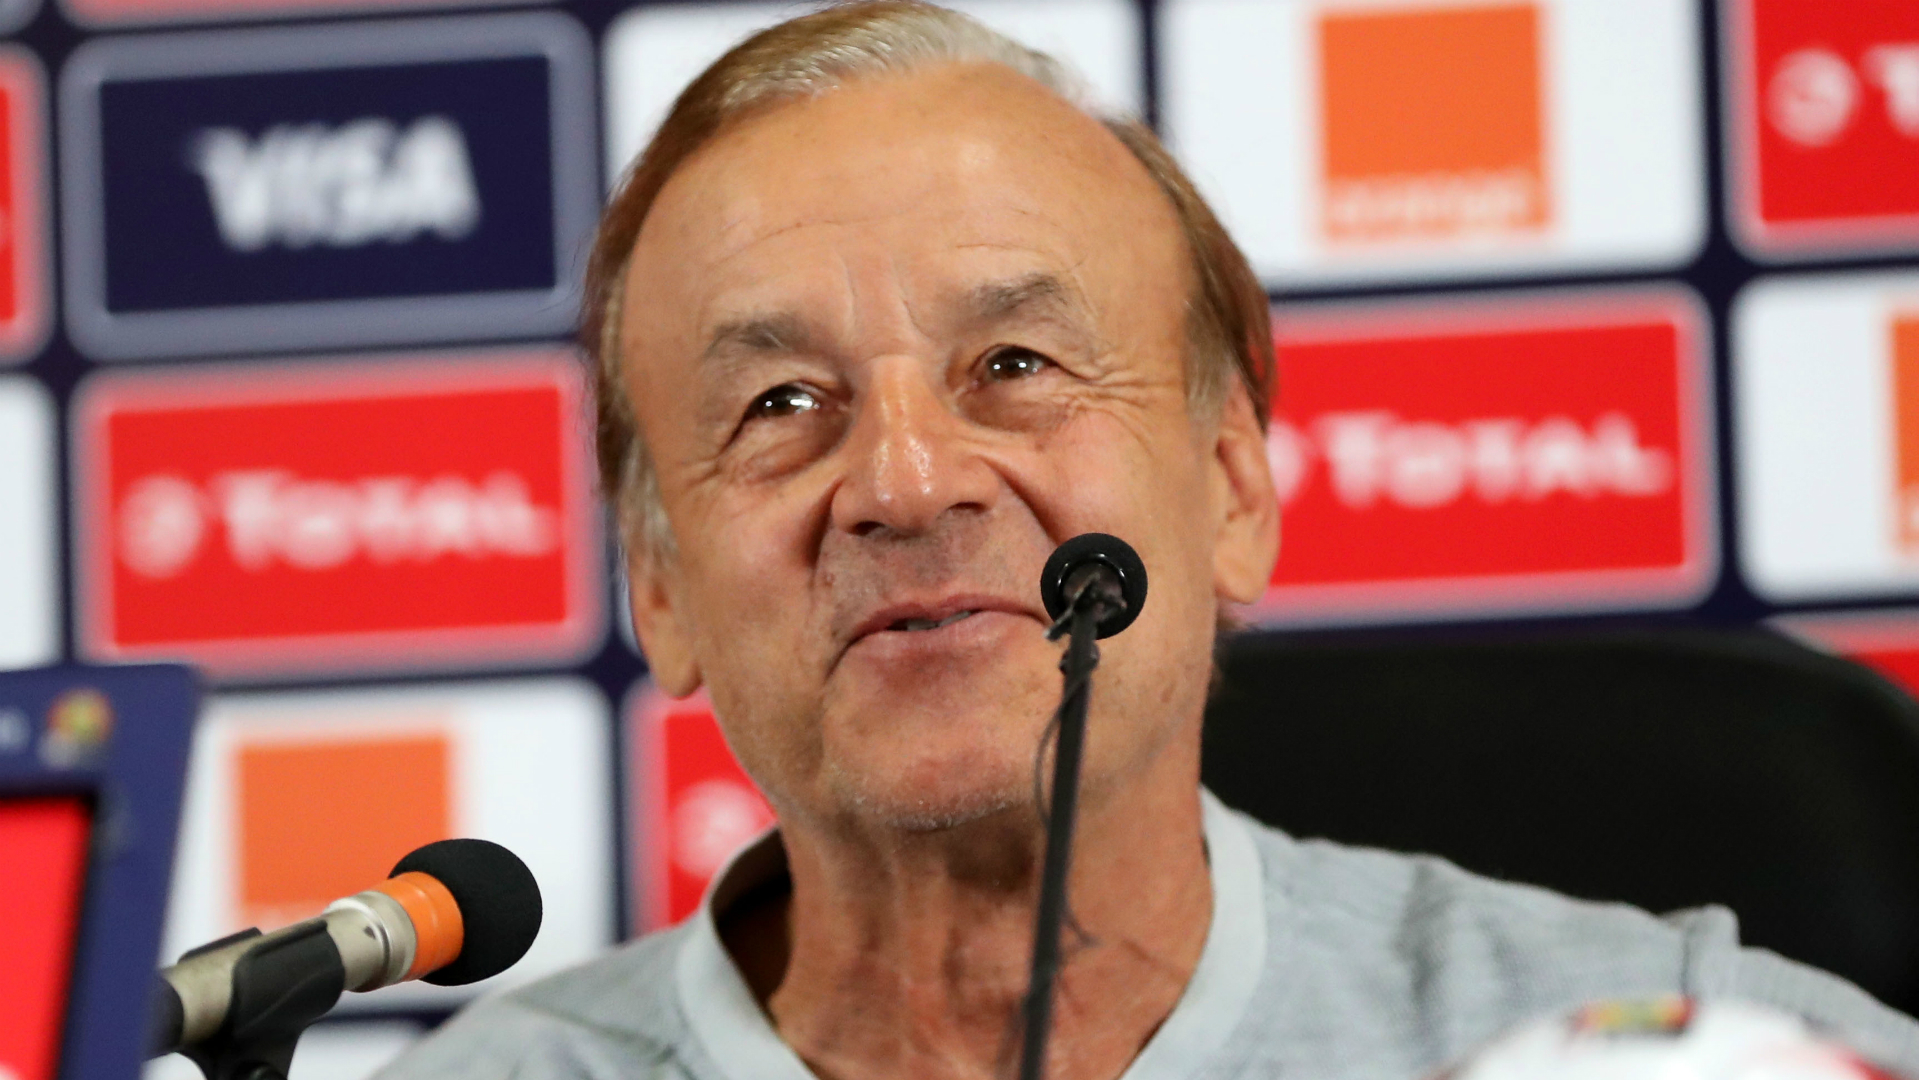 Nigeria coach Rohr reveals why he makes late substitutions